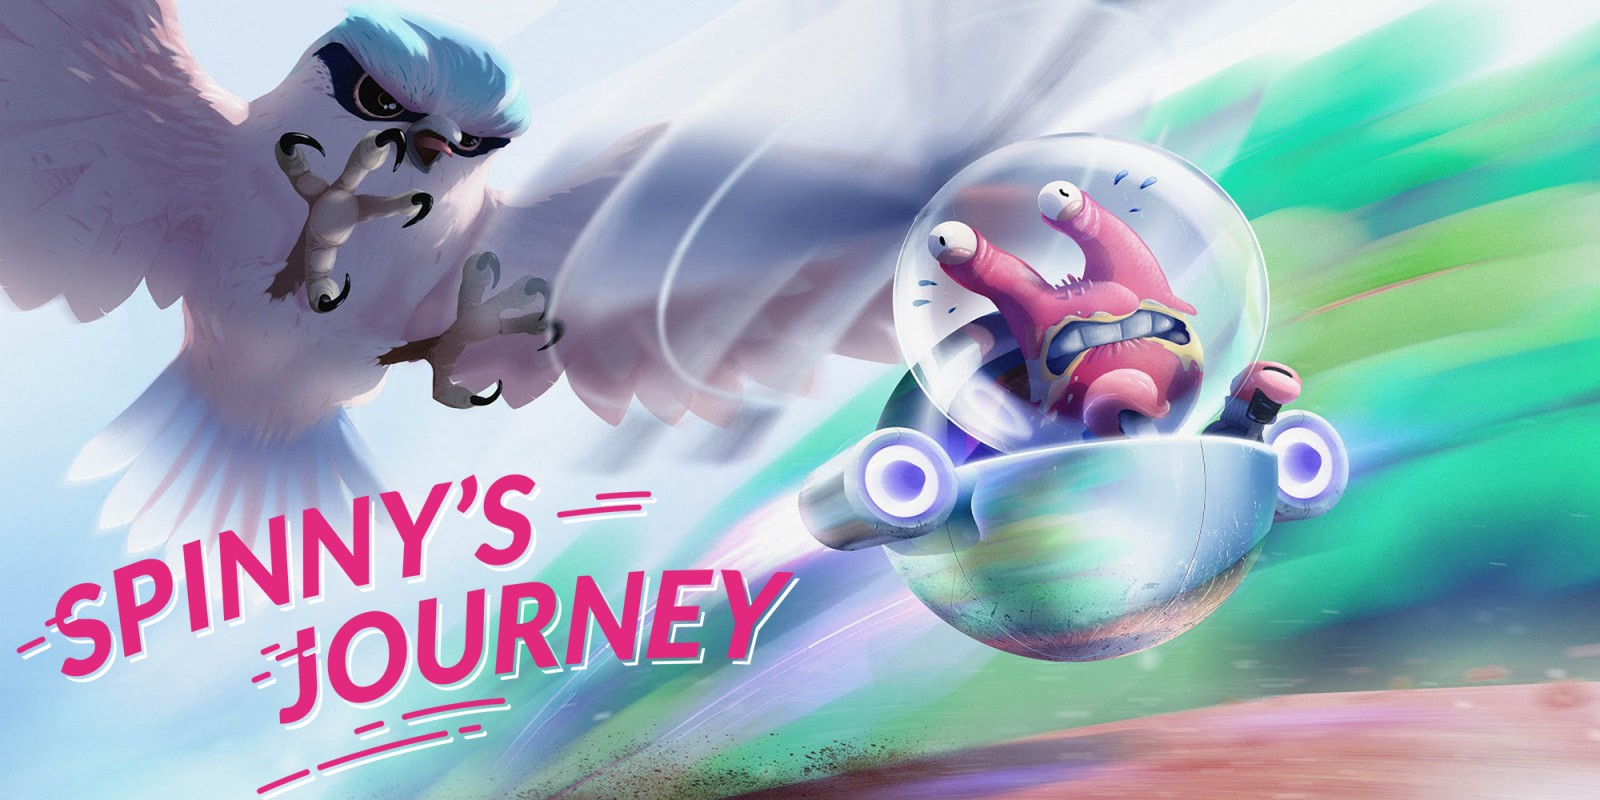 Spinny's Journey